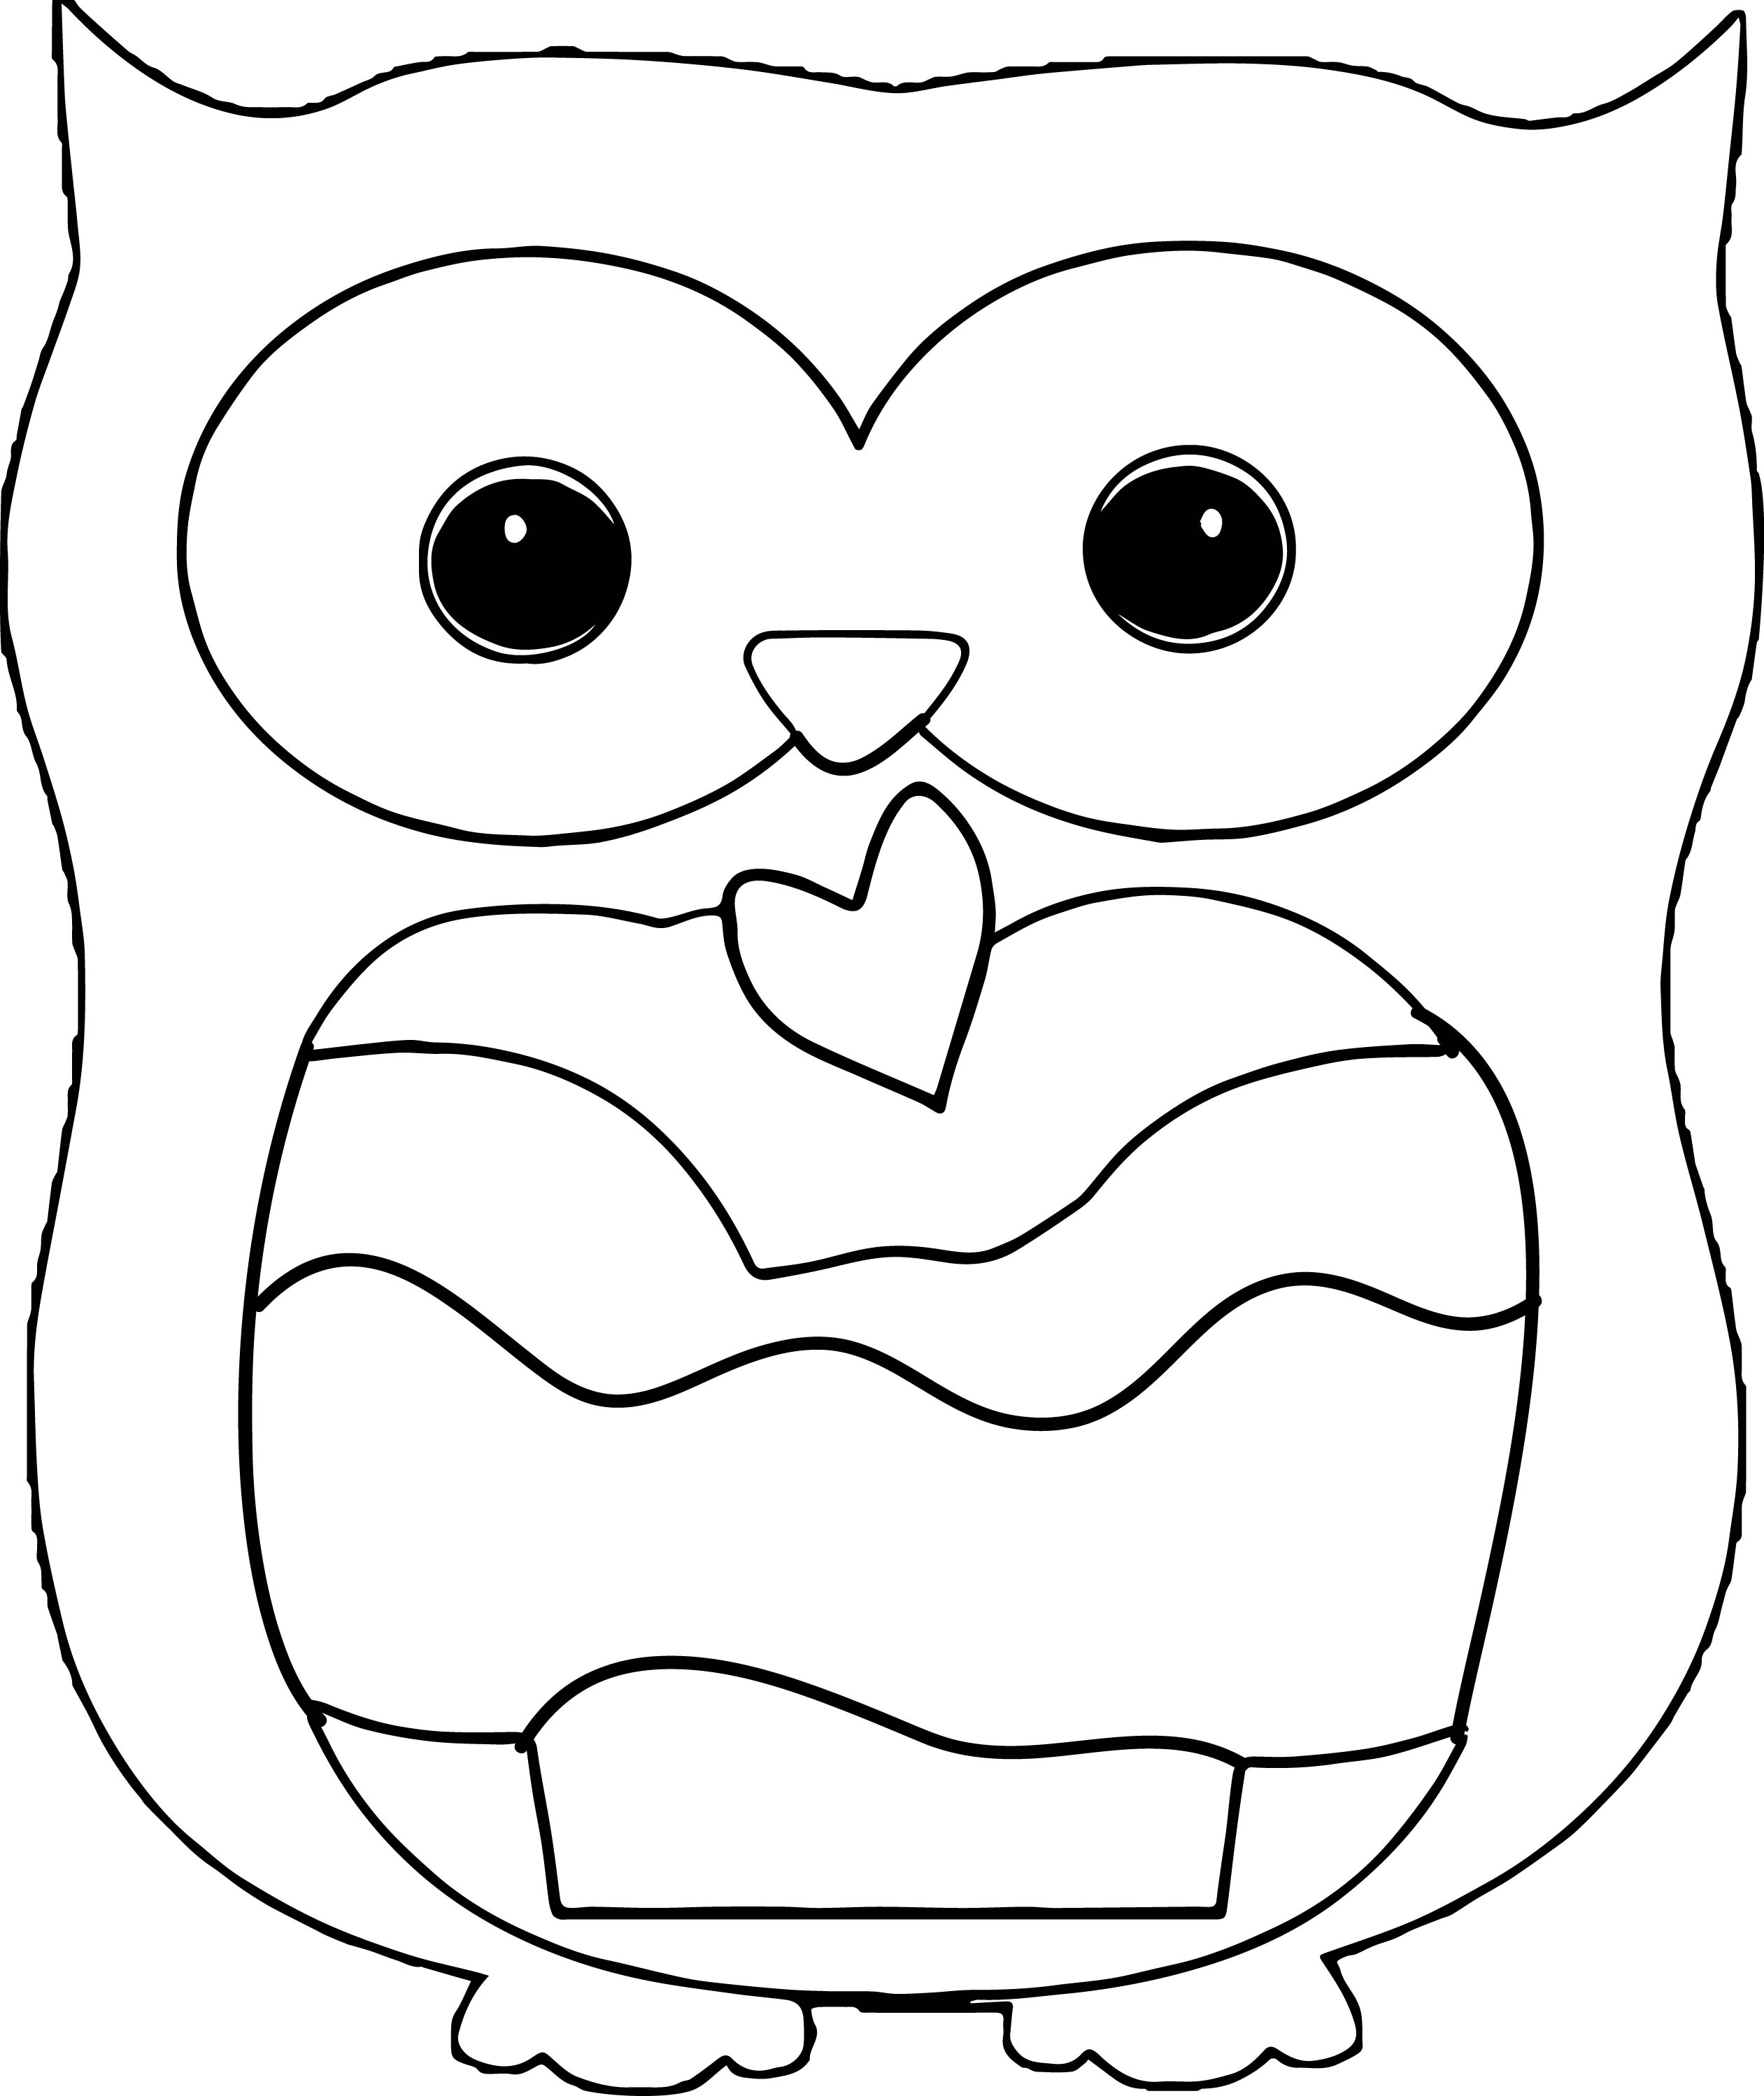 Owl Eating A Cupcake Coloring Page